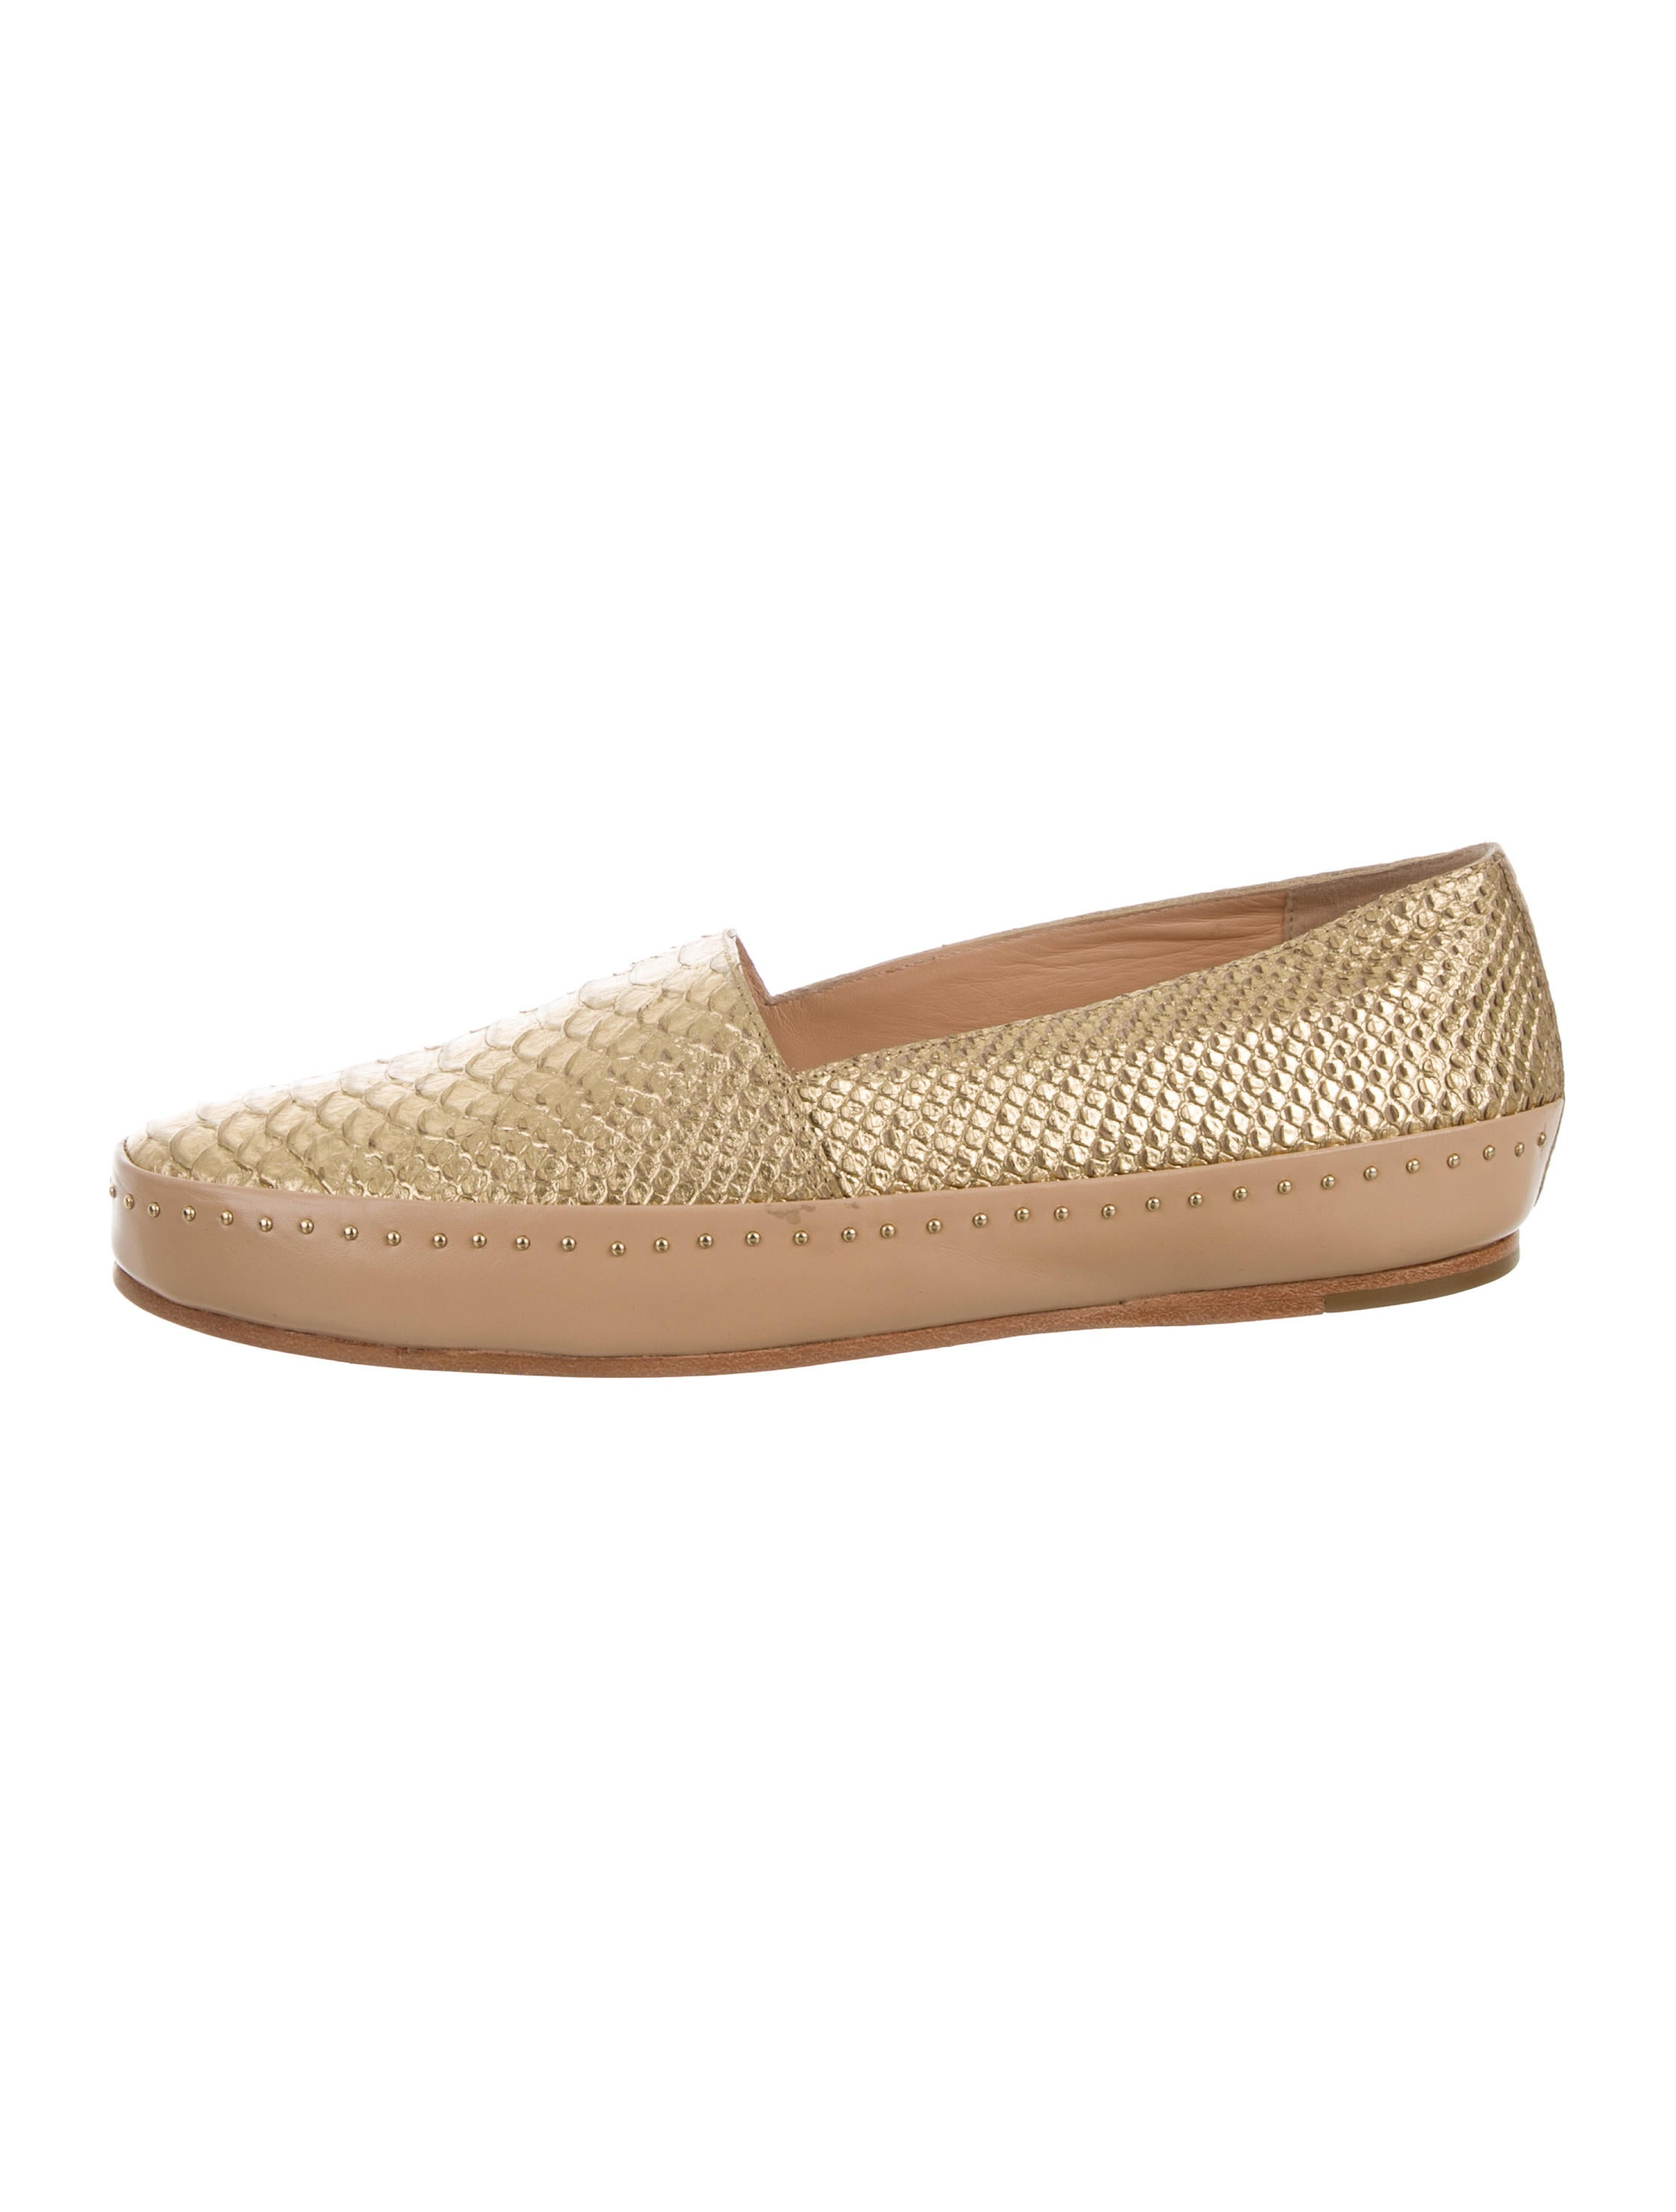 Ivy Kirzhner Tribeca Embossed Flats outlet best place new online free shipping choice clearance recommend cheap USA stockist aNRbq0KHJ8